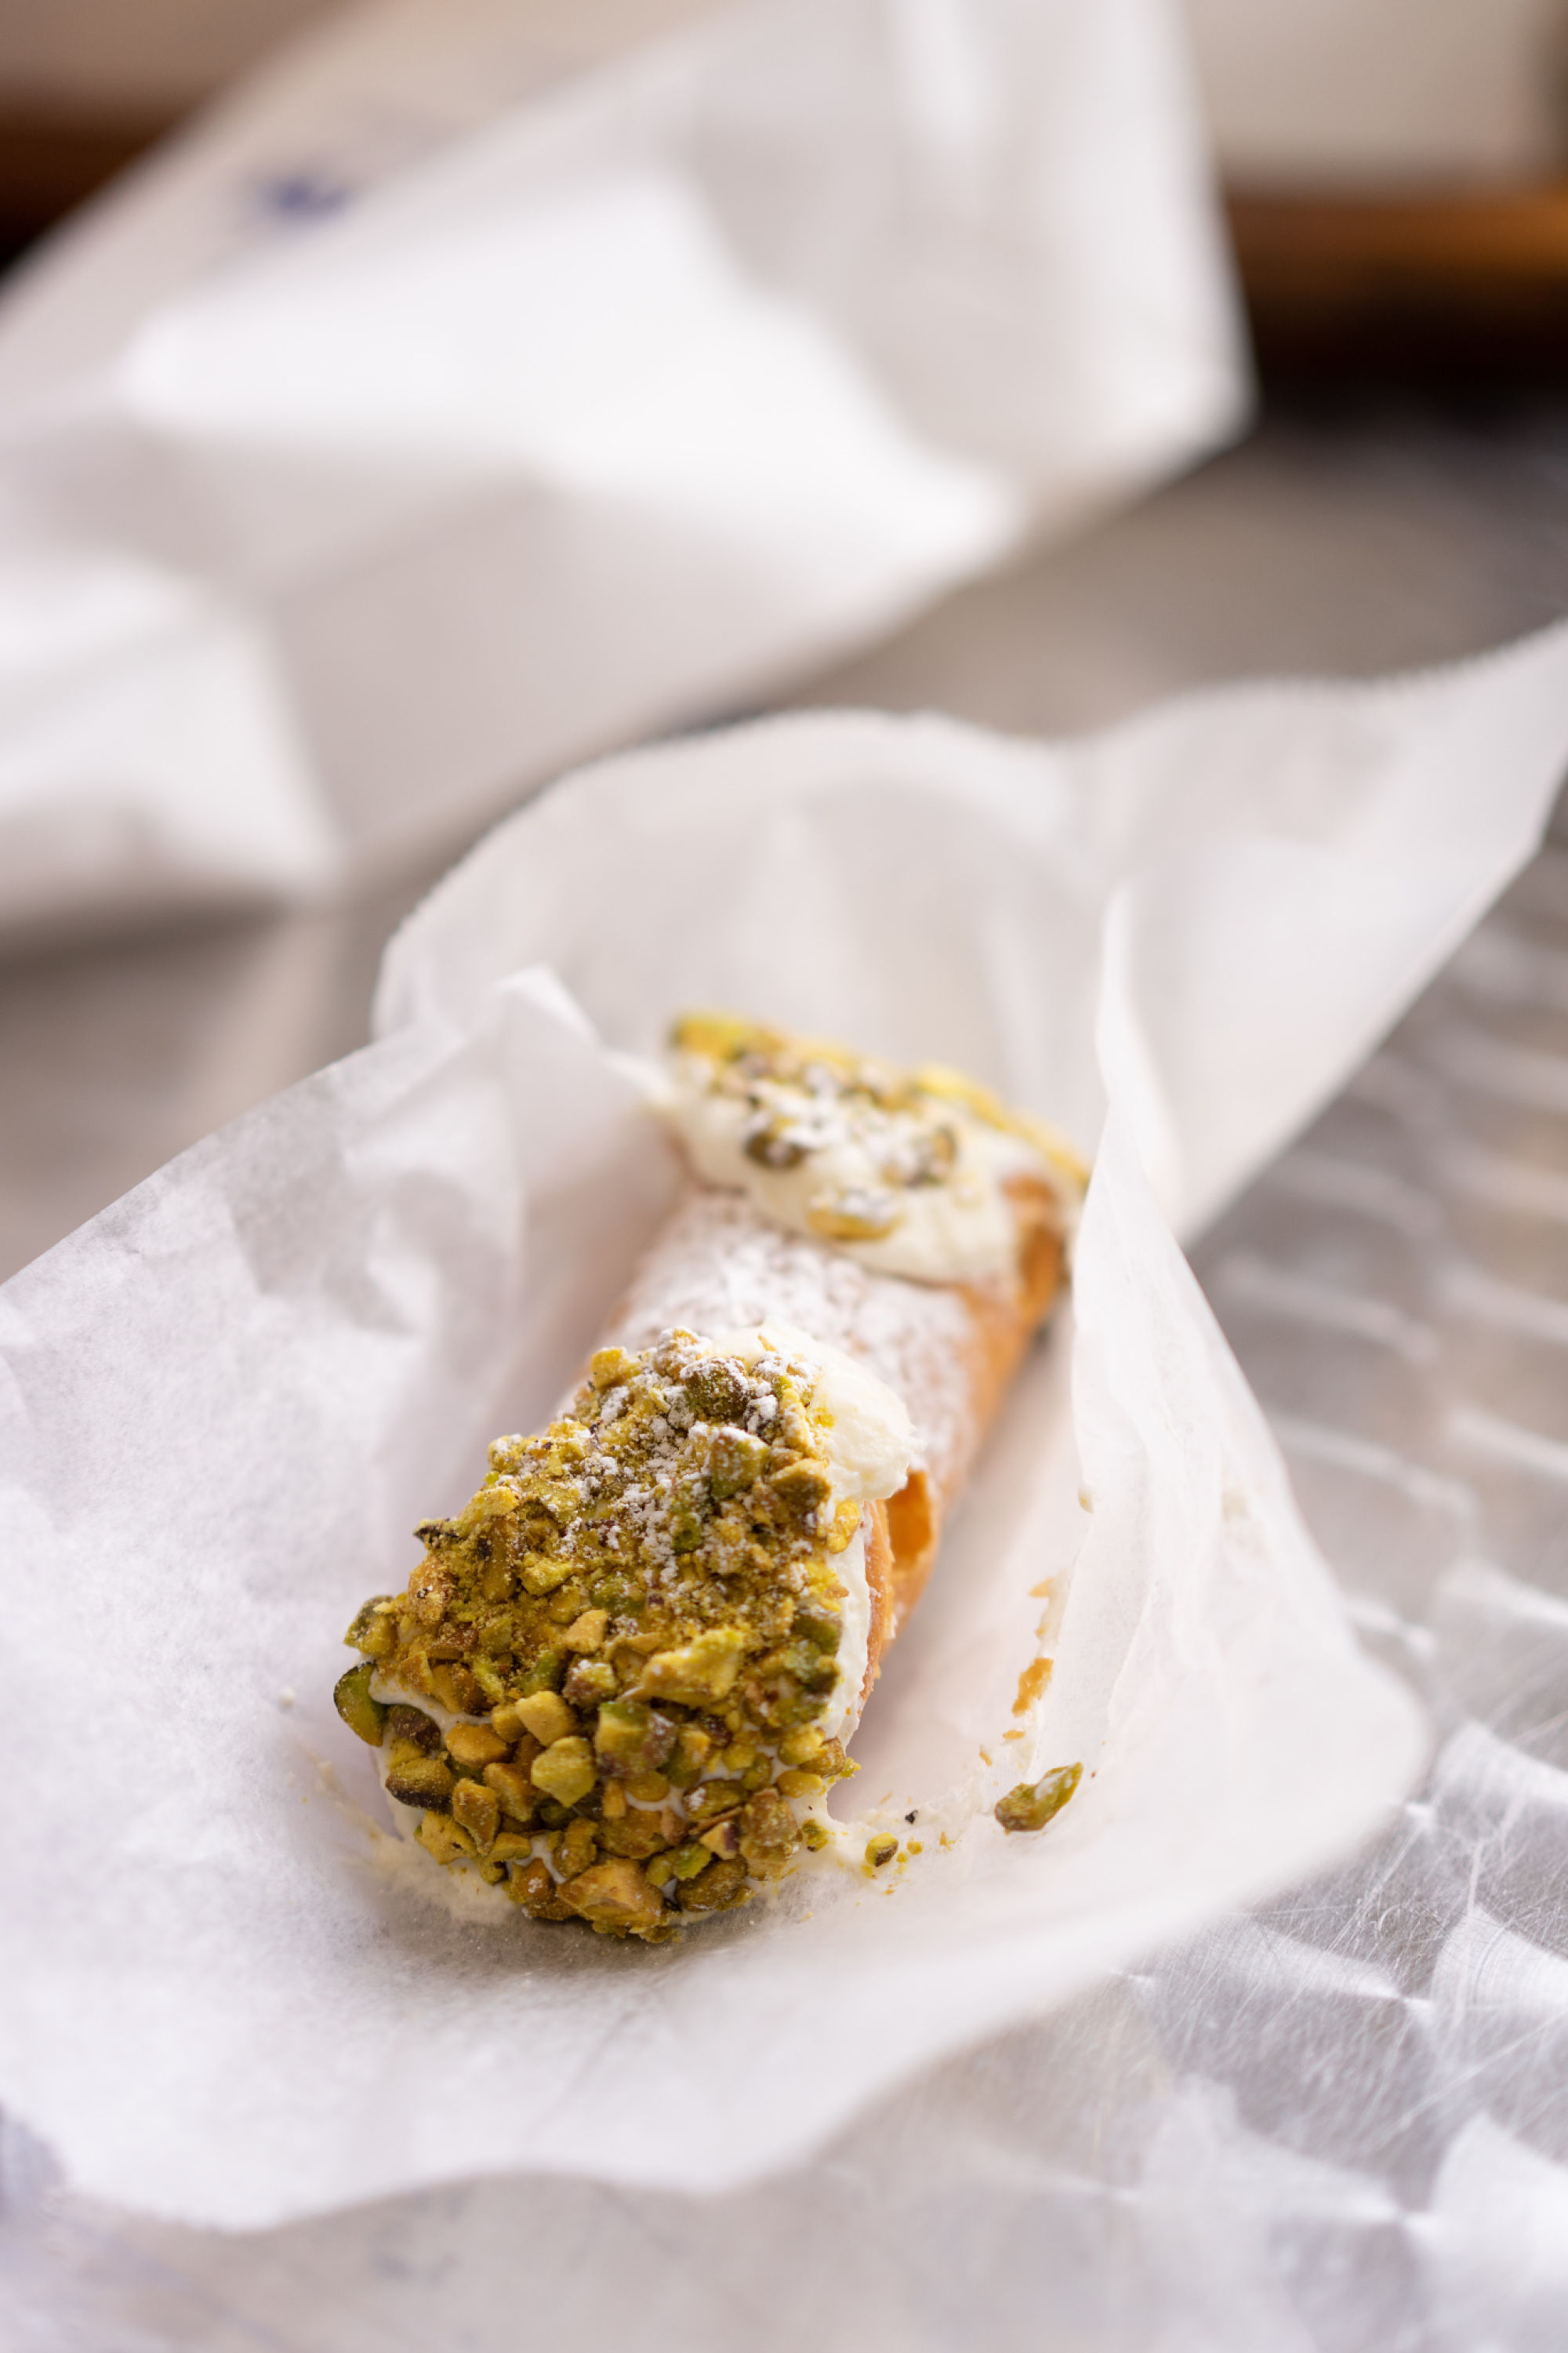 Pistachio Cannoli at Mike's Pastry